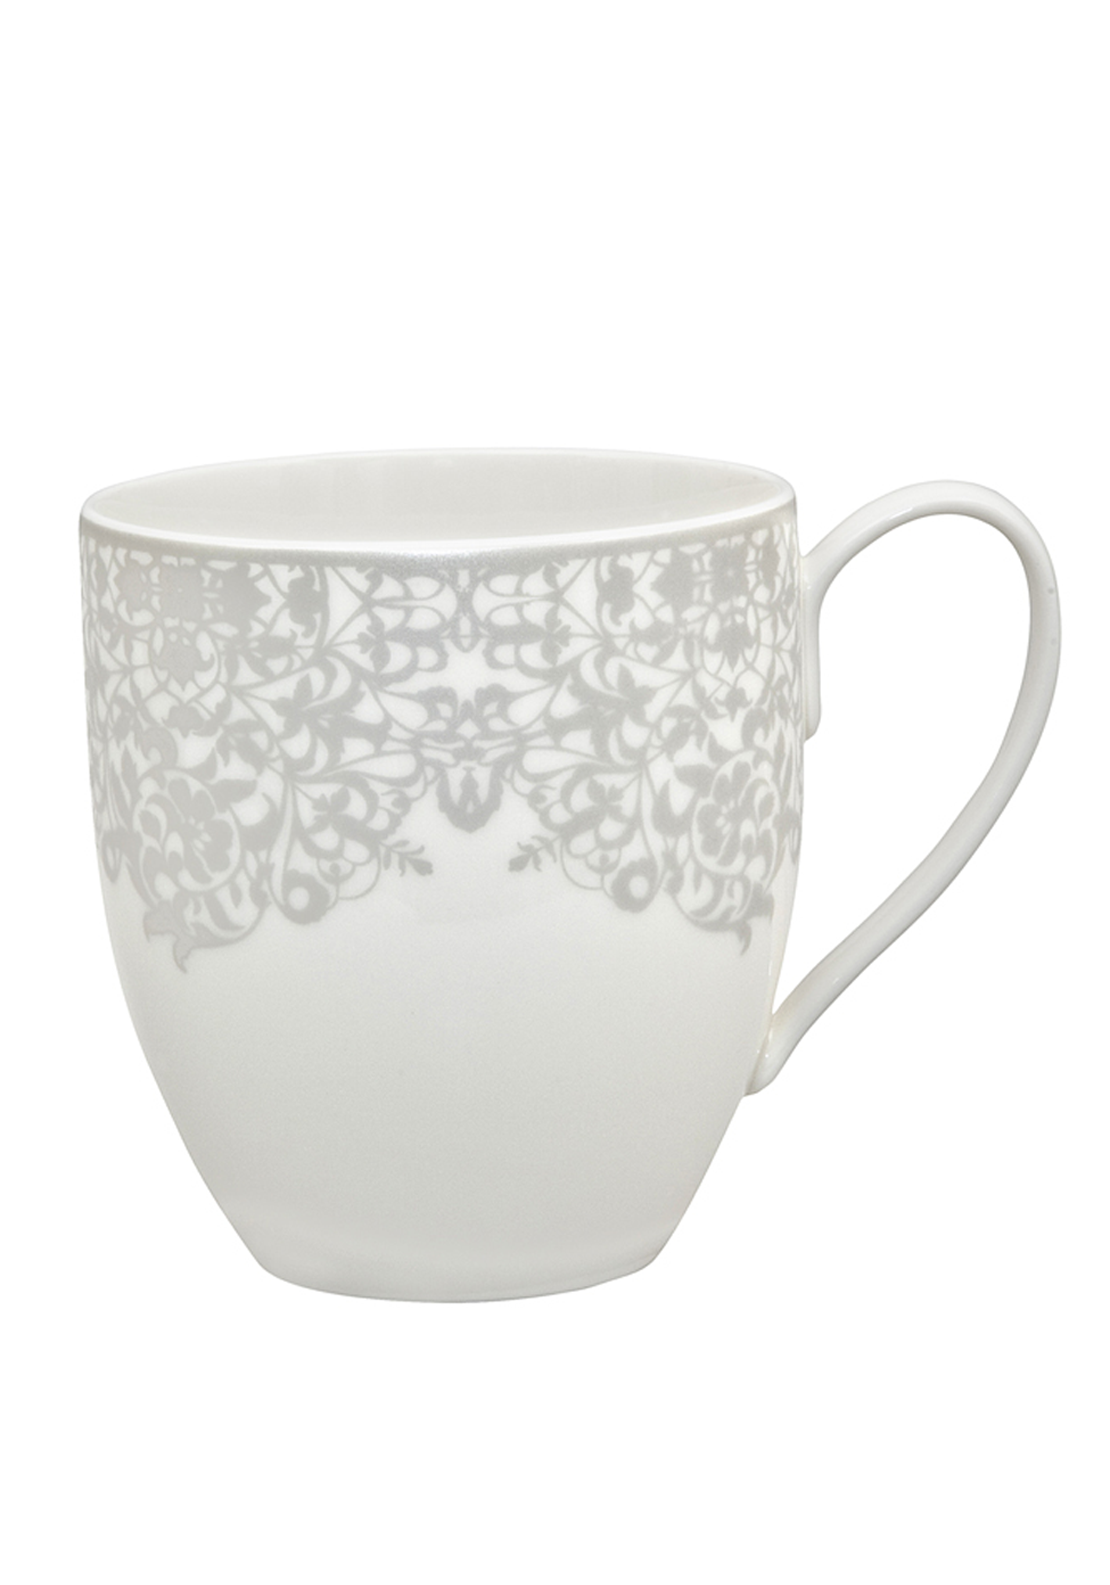 Denby Monsoon Filigree Large Mug, Silver